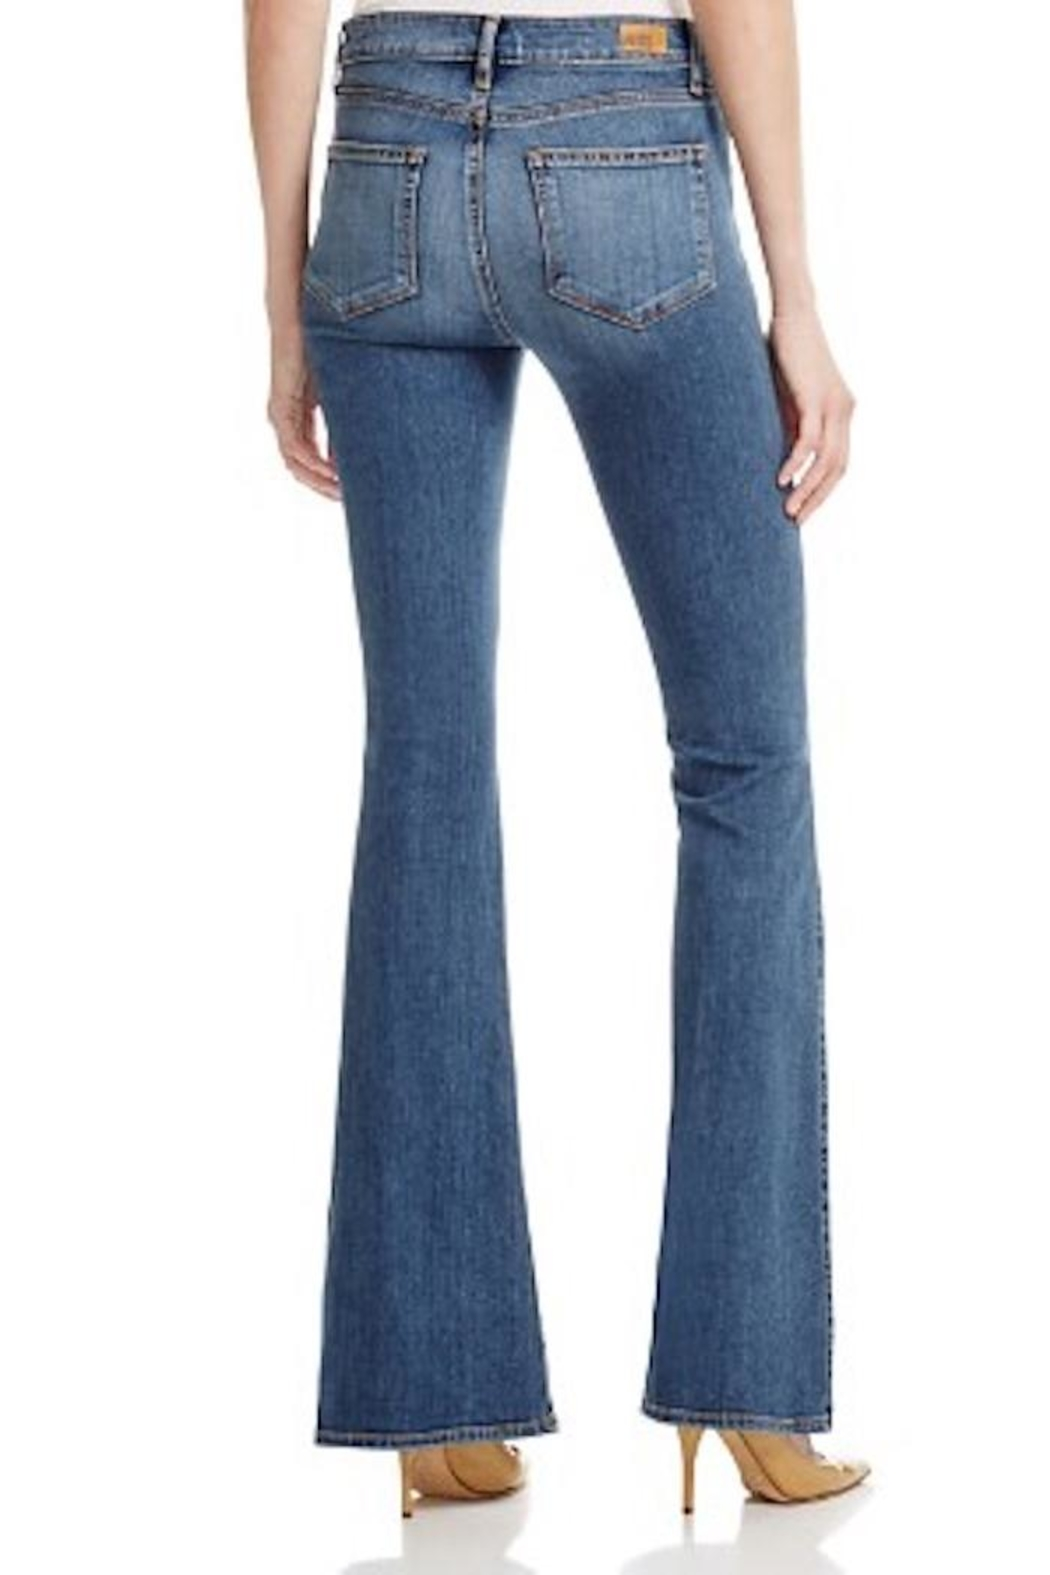 Paige Denim Distressed Flared Jean - Front Full Image